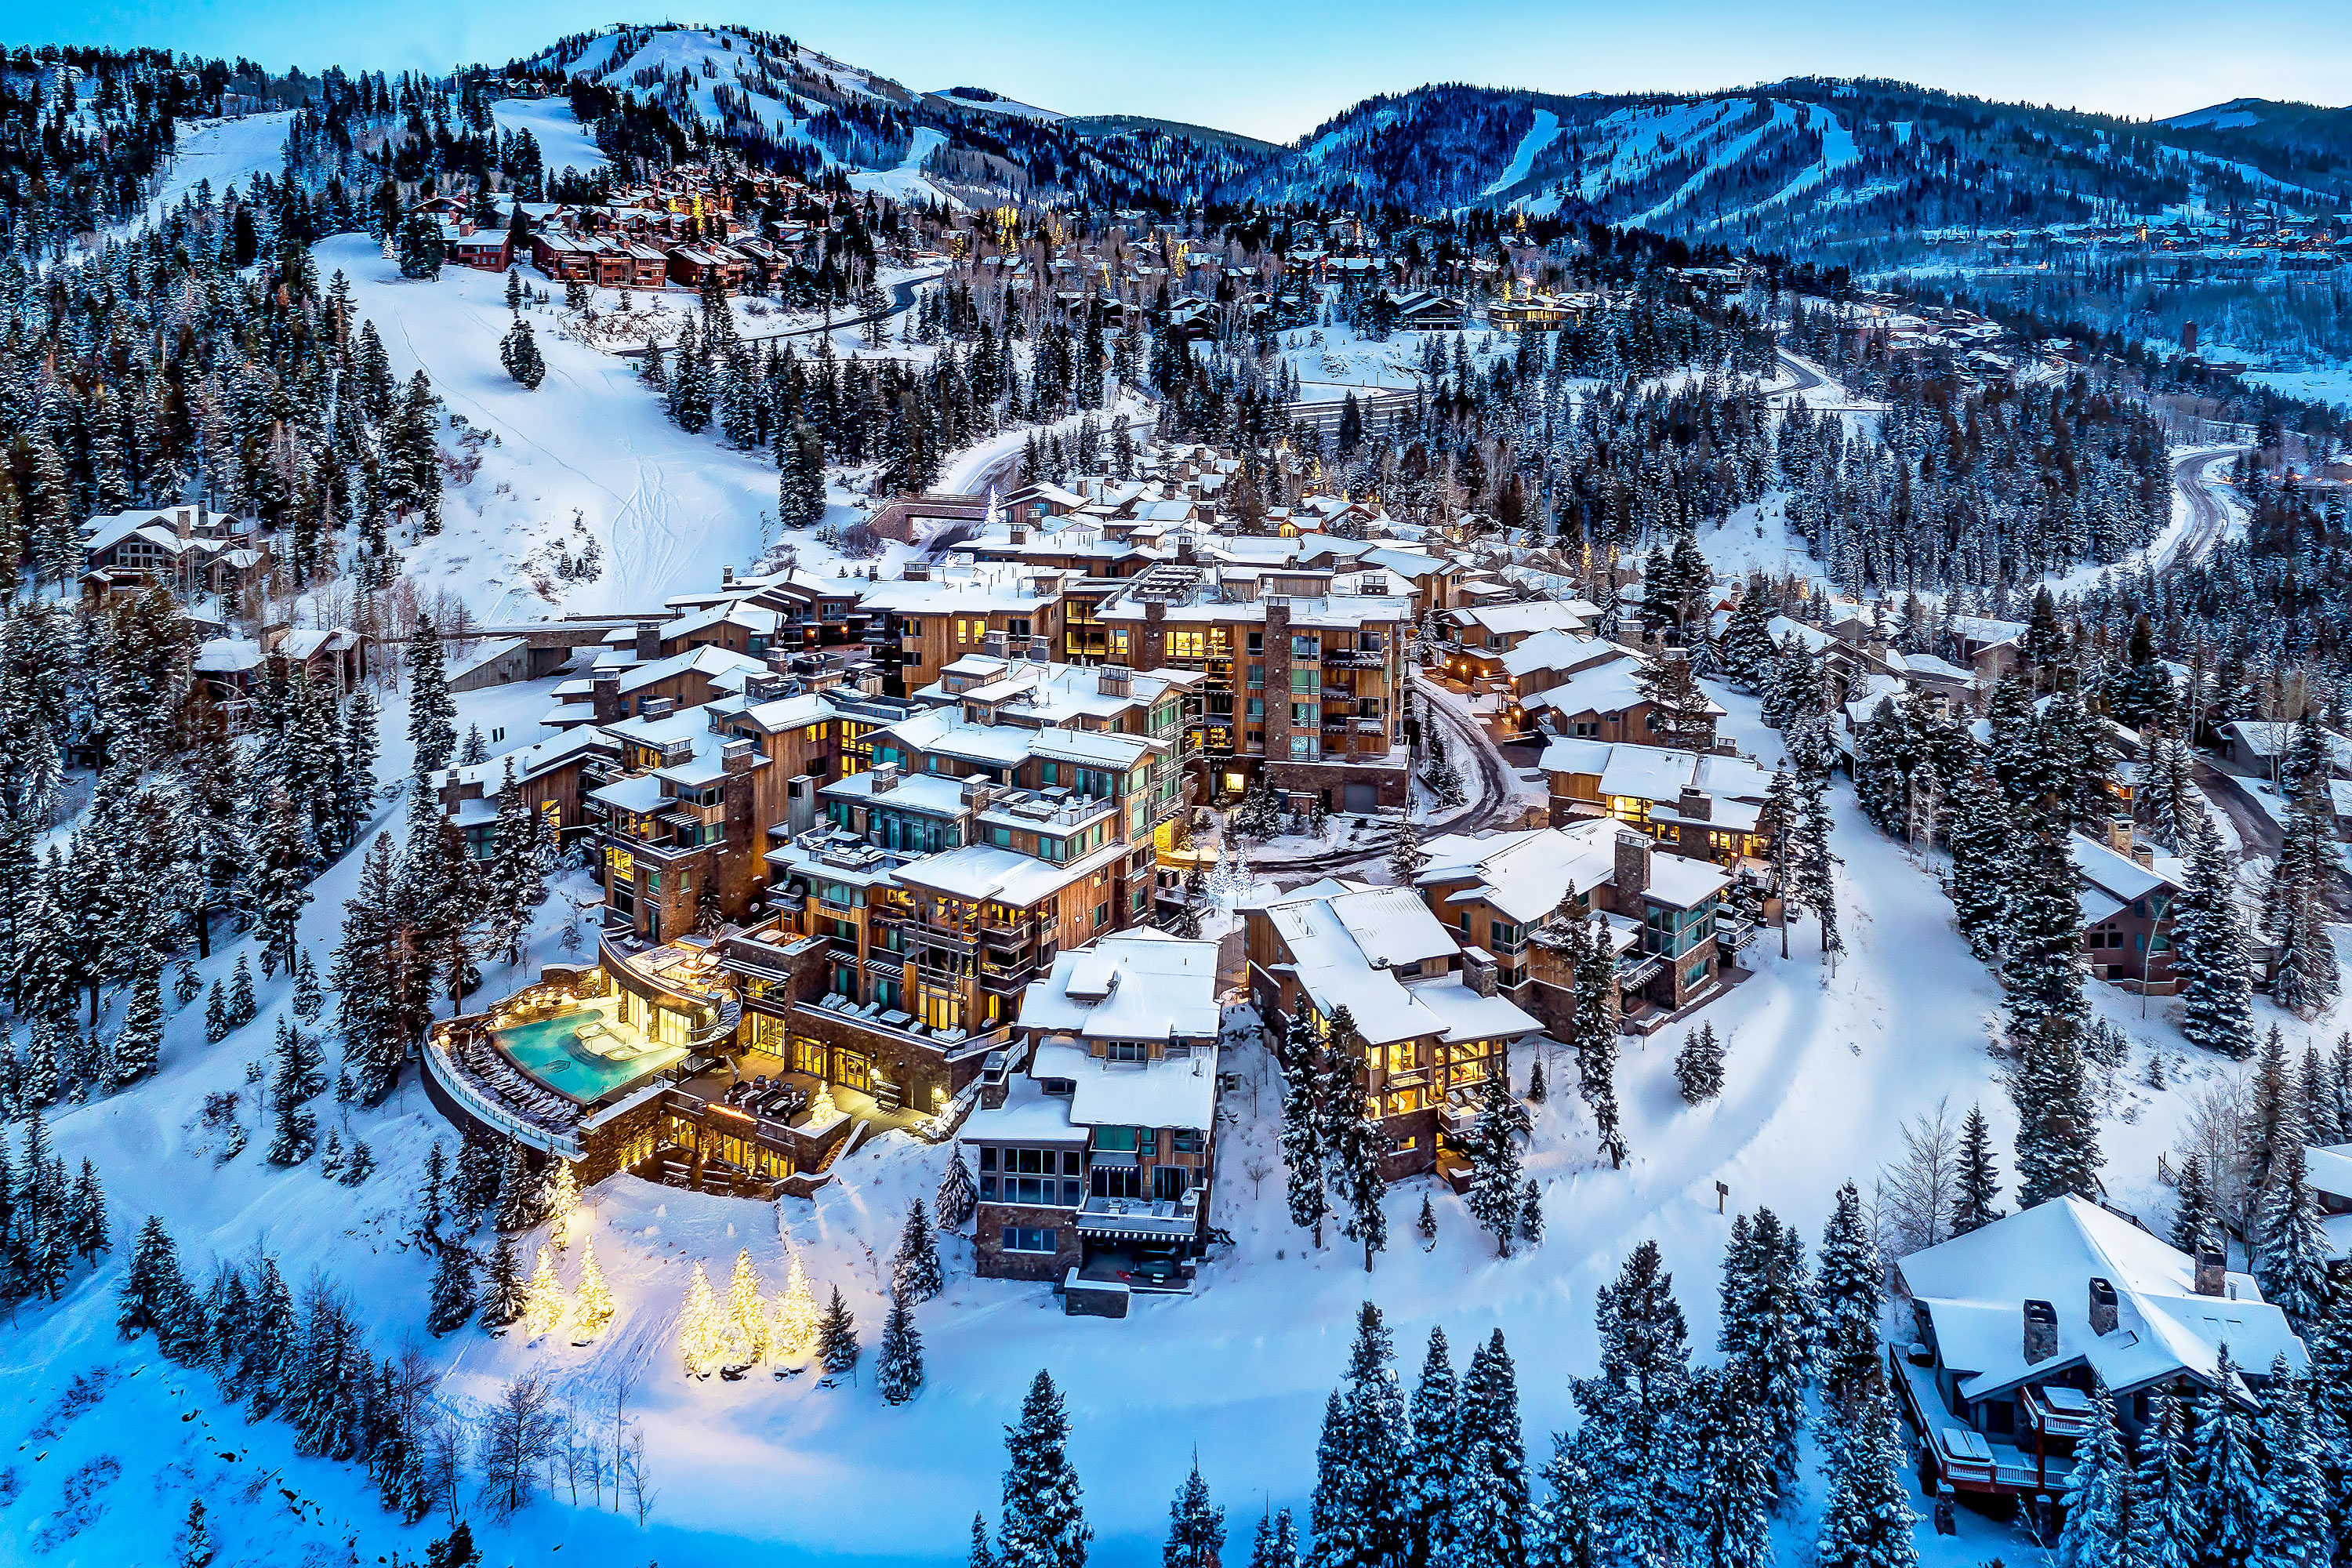 Stein Eriksen Residences - Park City, Utah. Aerial Photography by Alan Blakely.